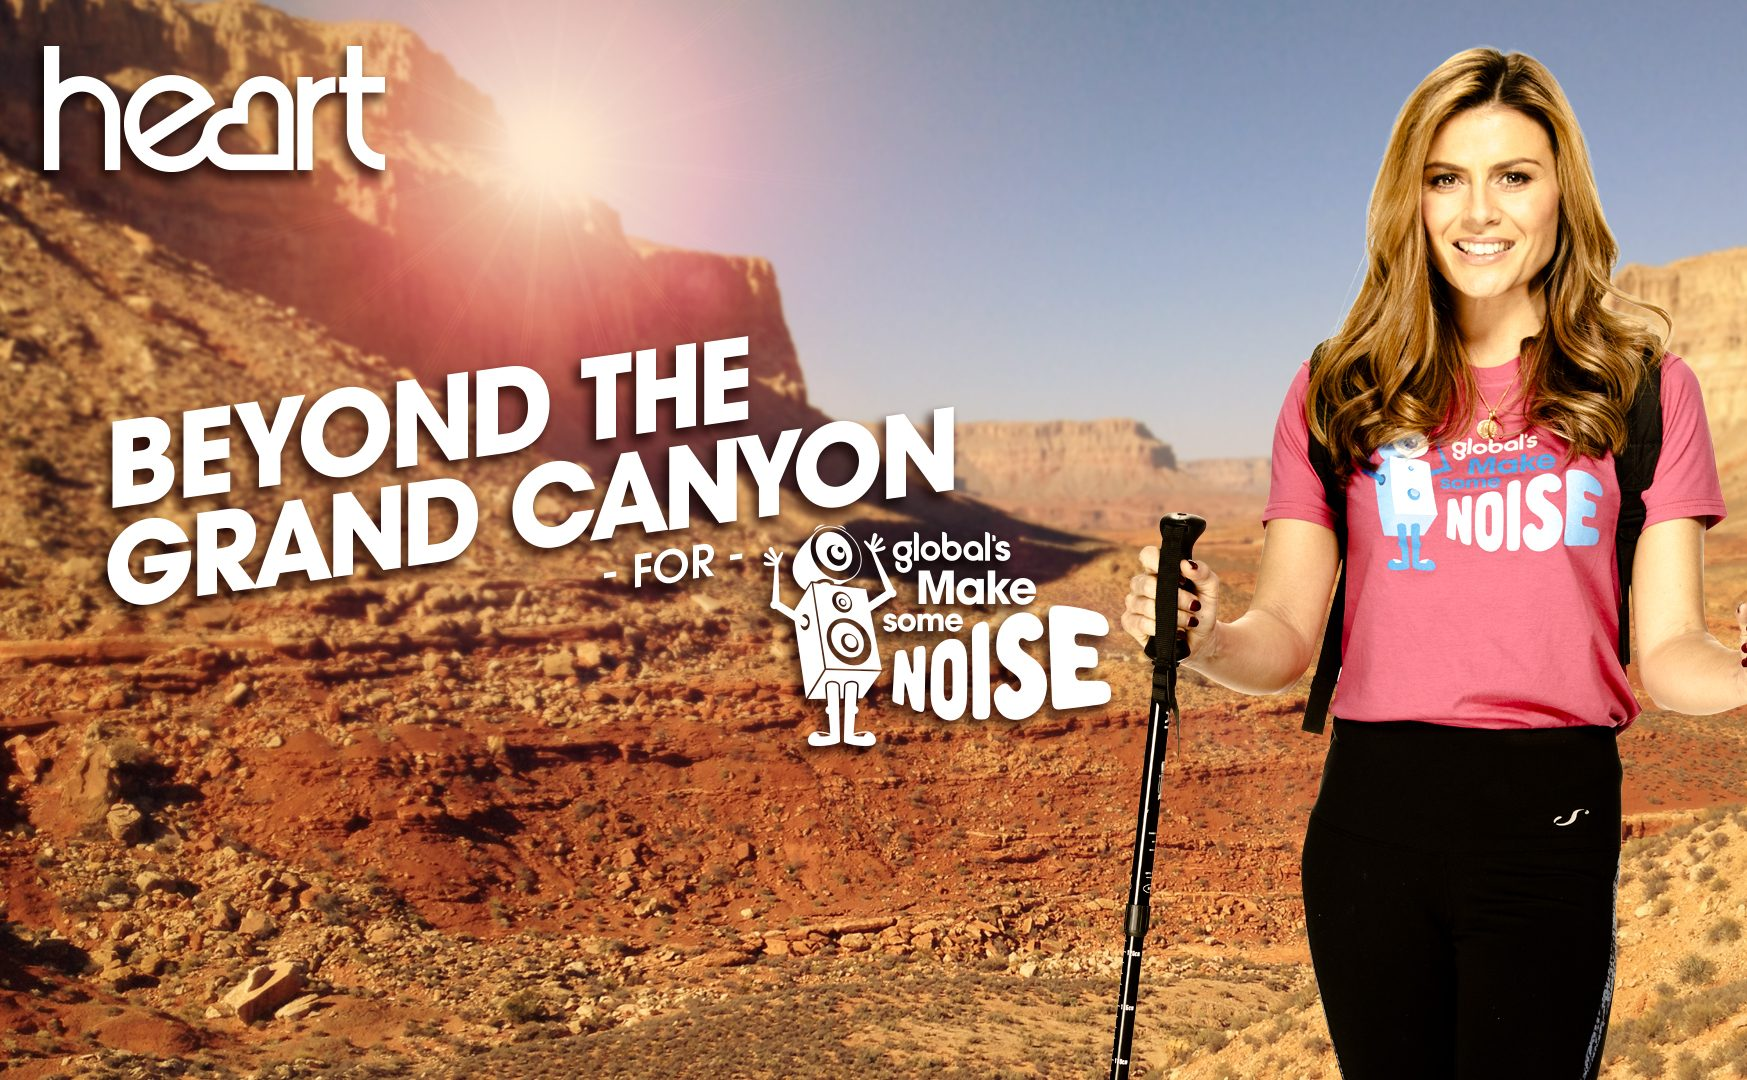 All the action from our Beyond The Grand Canyon Trek